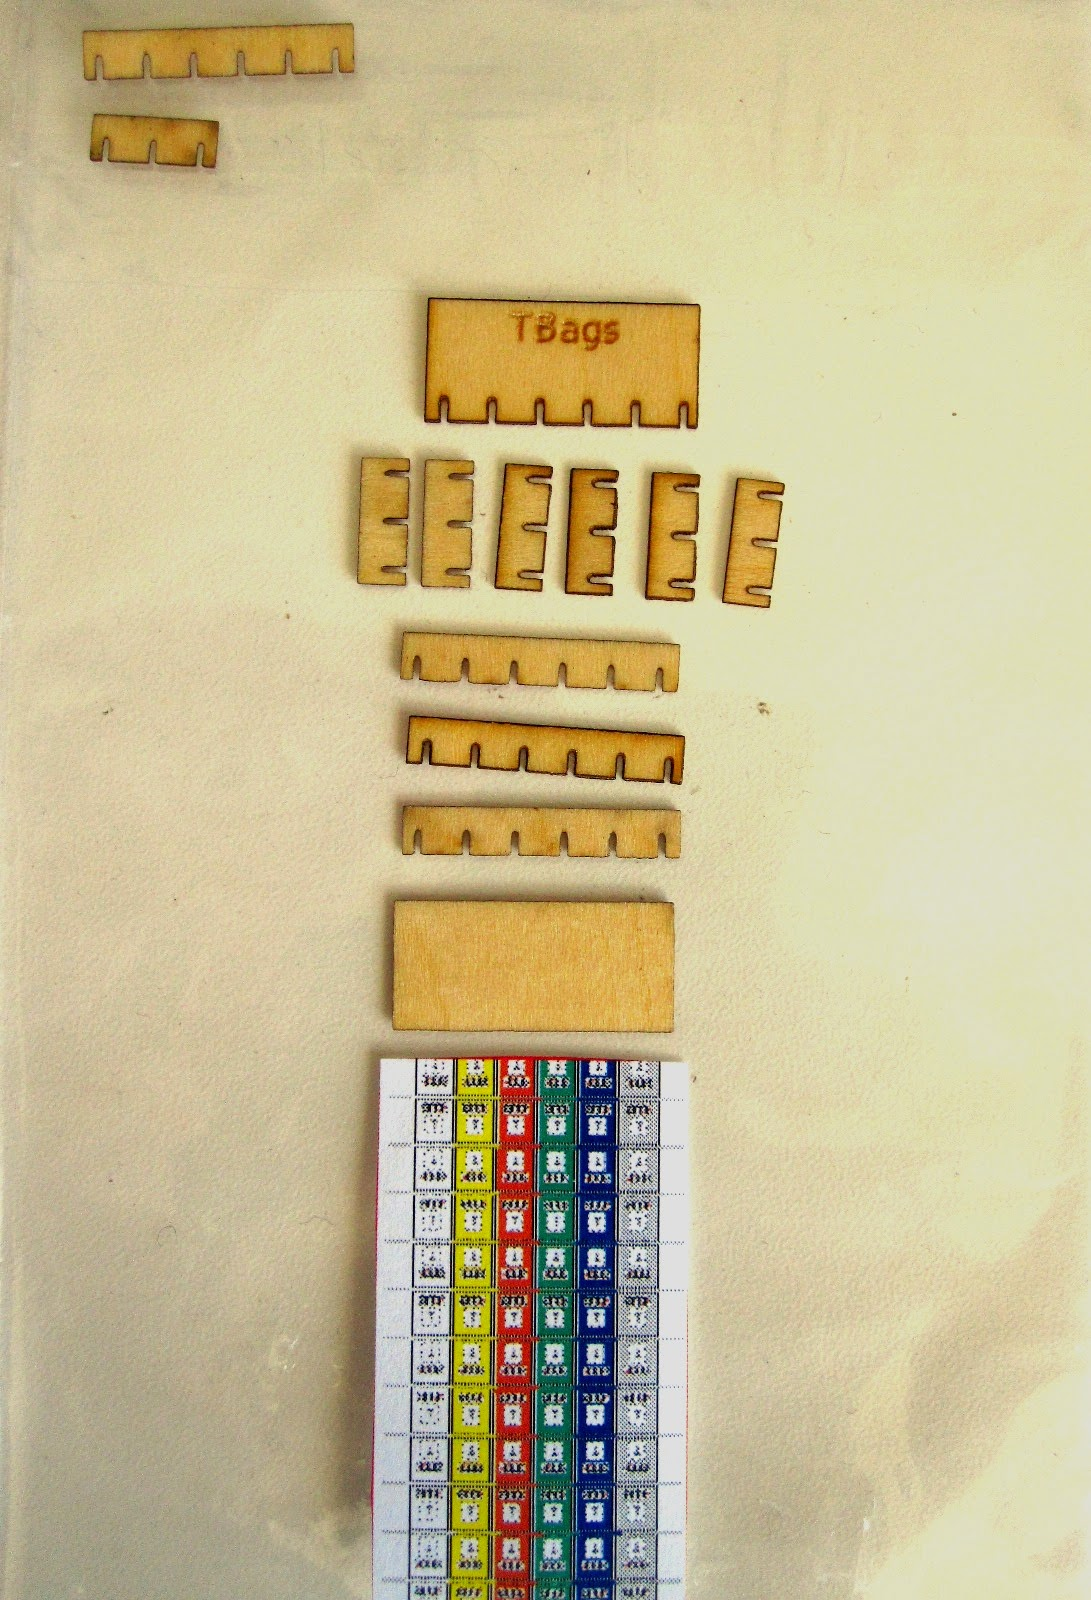 Components of a modern dolls' house miniature tea bag box kit, laid out ready for assembly.